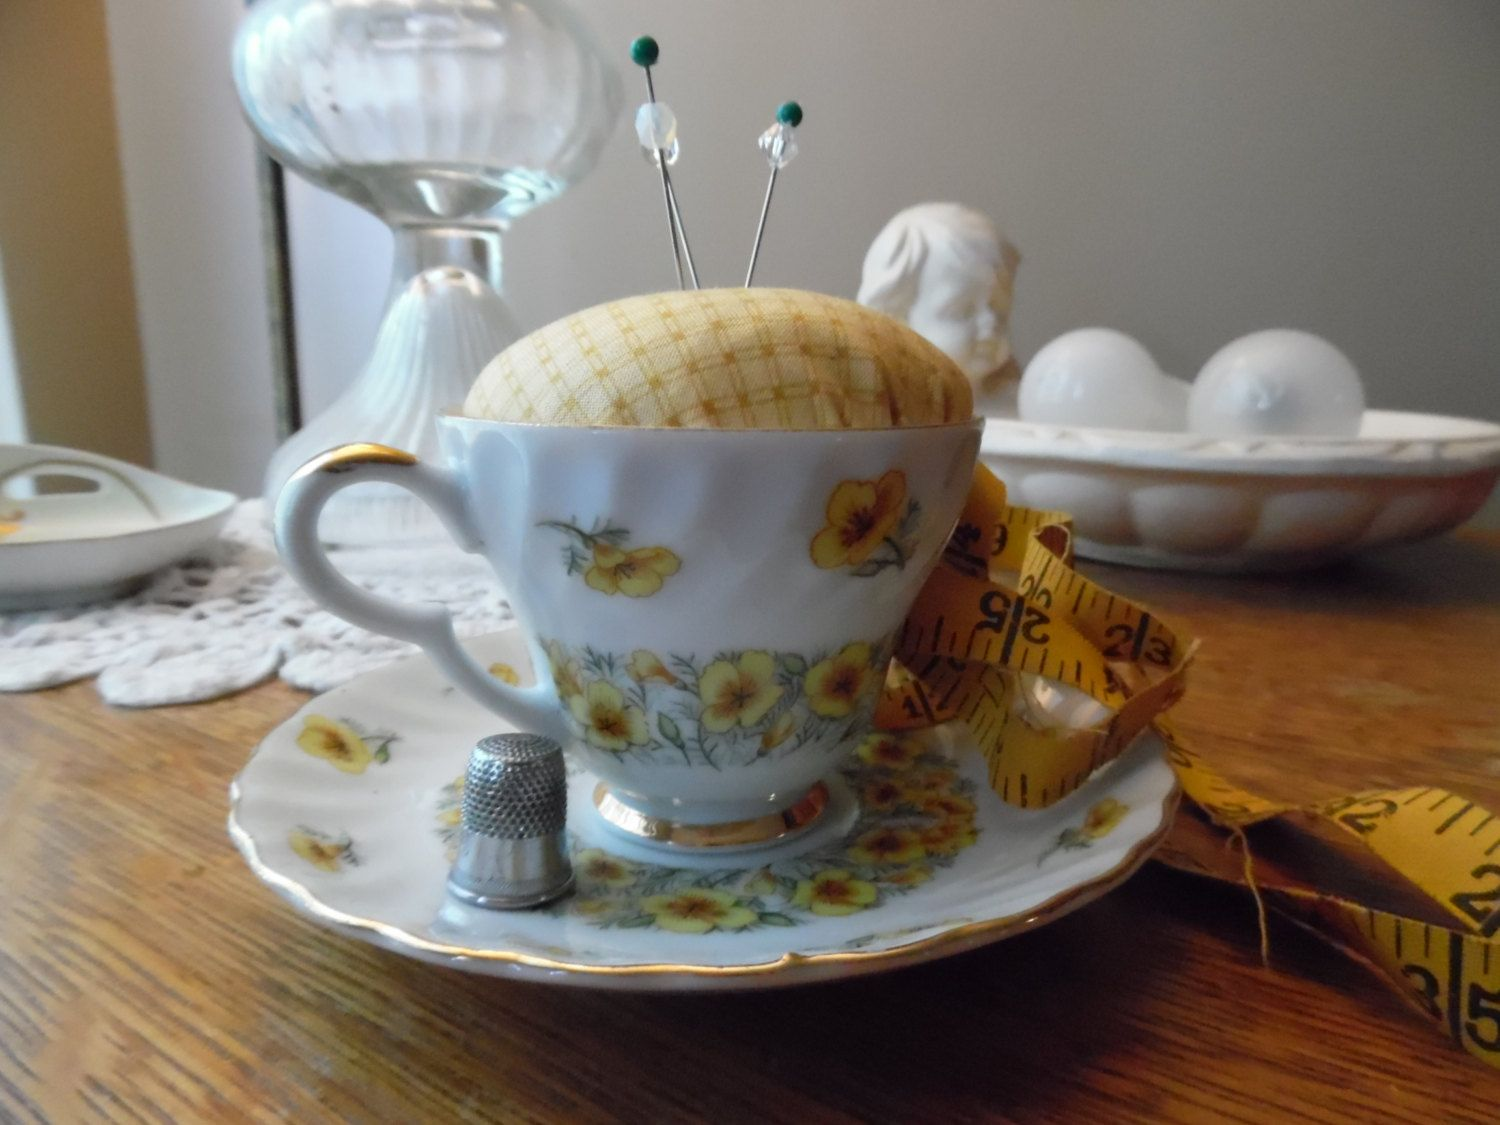 Antique Lefton China August Poppy Teacup and Saucer Pincushion Yellow Fabric, Yellow Flowers Gold Trim Sewing Quilting Pin Cushion by KylesUpcycle on Etsy